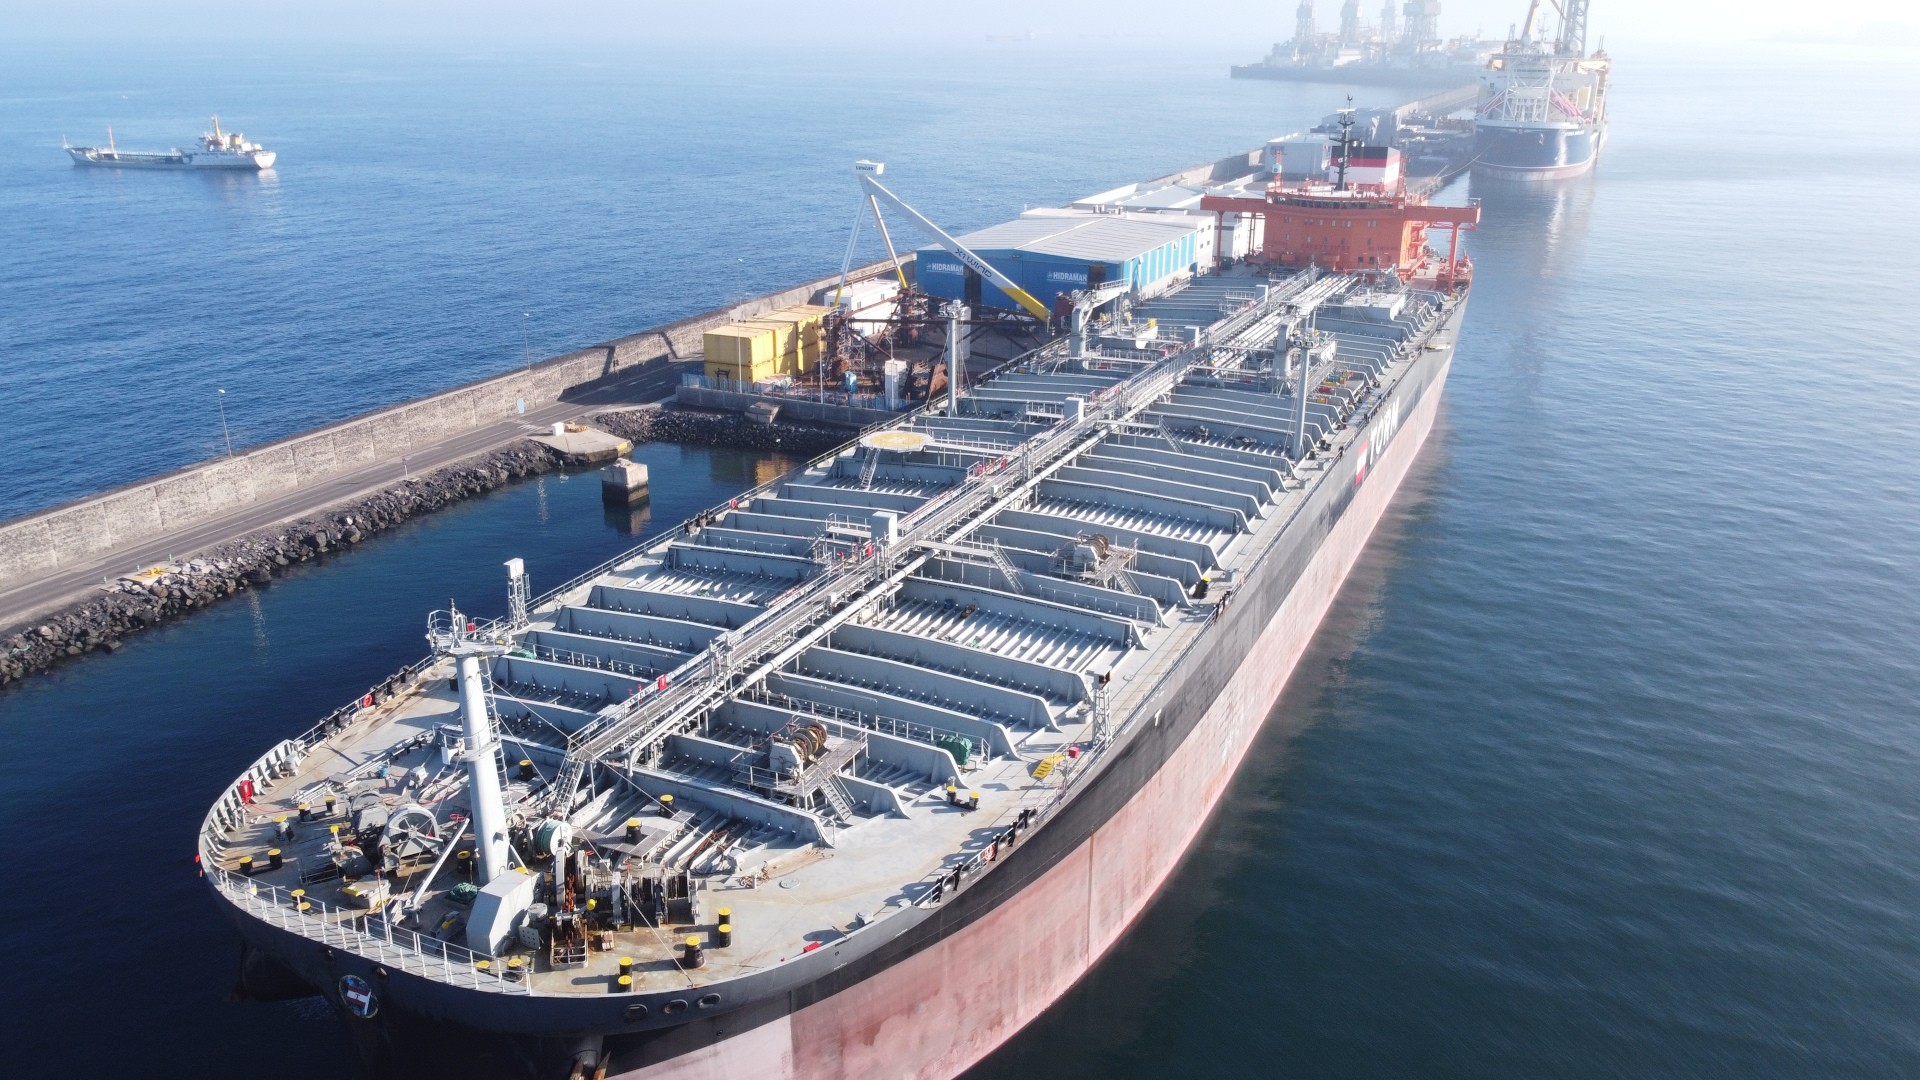 hidramar group takes on hull repair of a crude oil tanker vessel ship 001 1